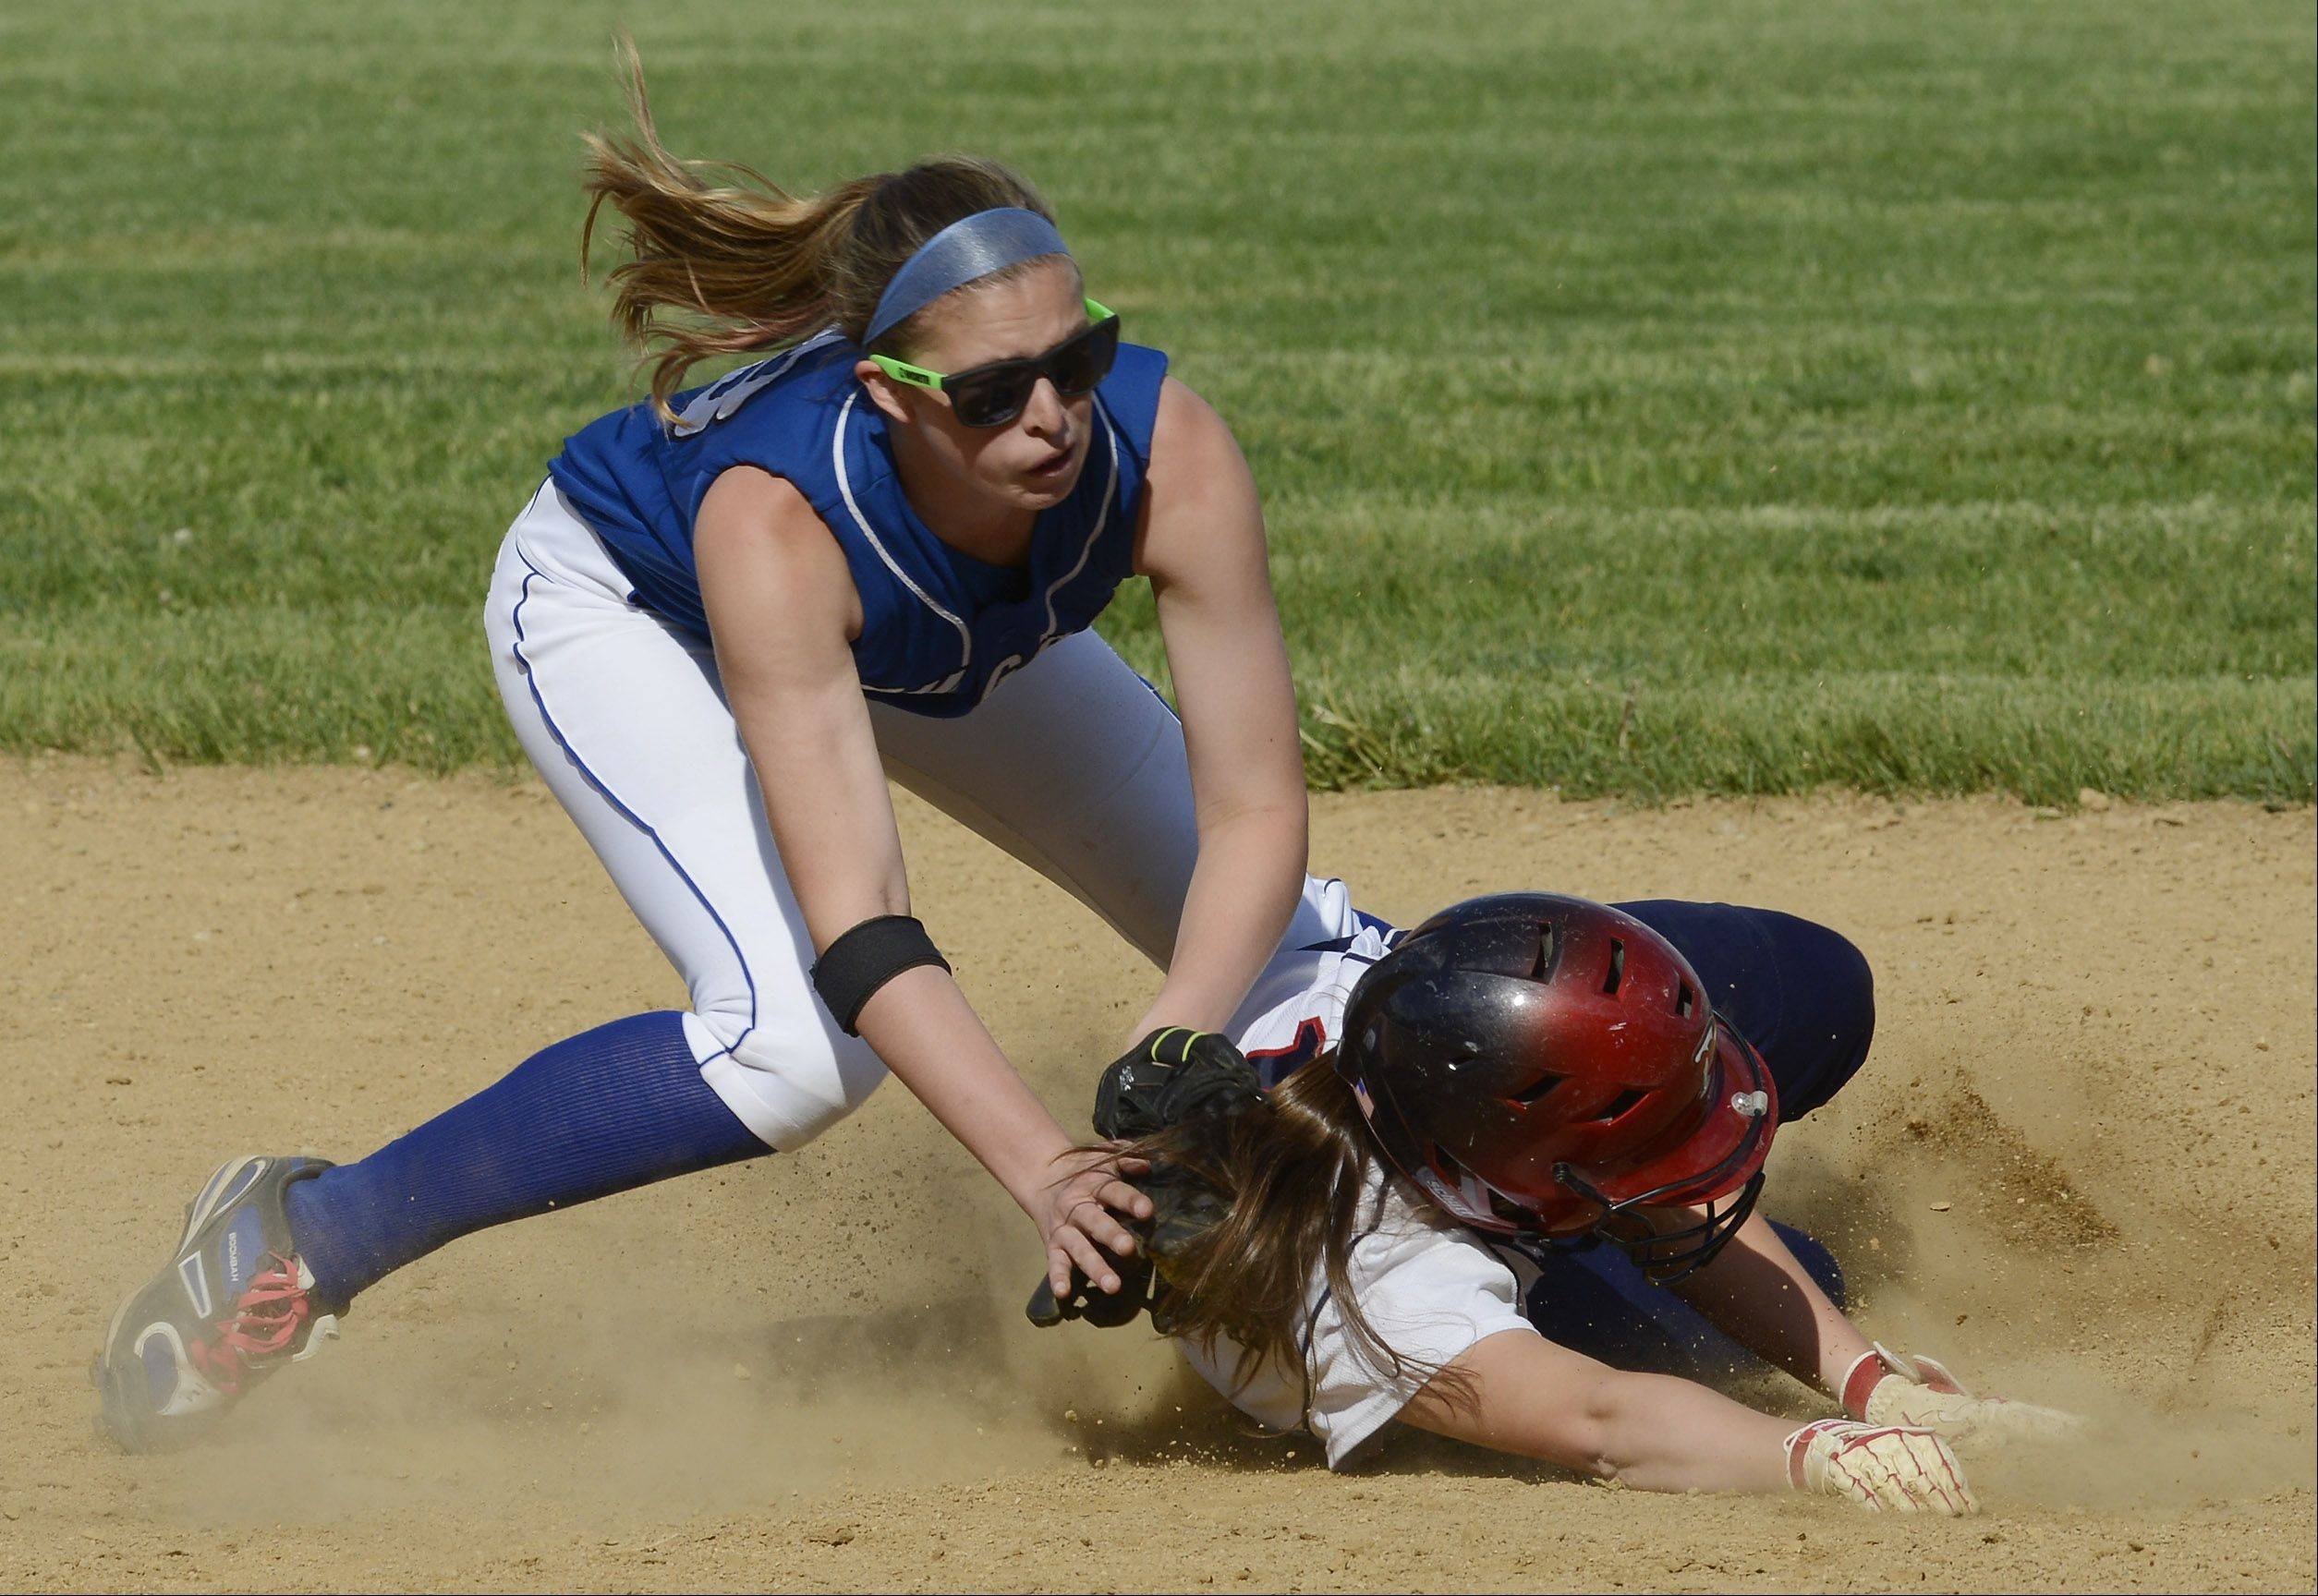 Vernon Hills� Dana Meline tags out St. Viator�s Gina Mastrodomenico on a steal attempt during Tuesday�s regional semifinal in Arlington Heights.